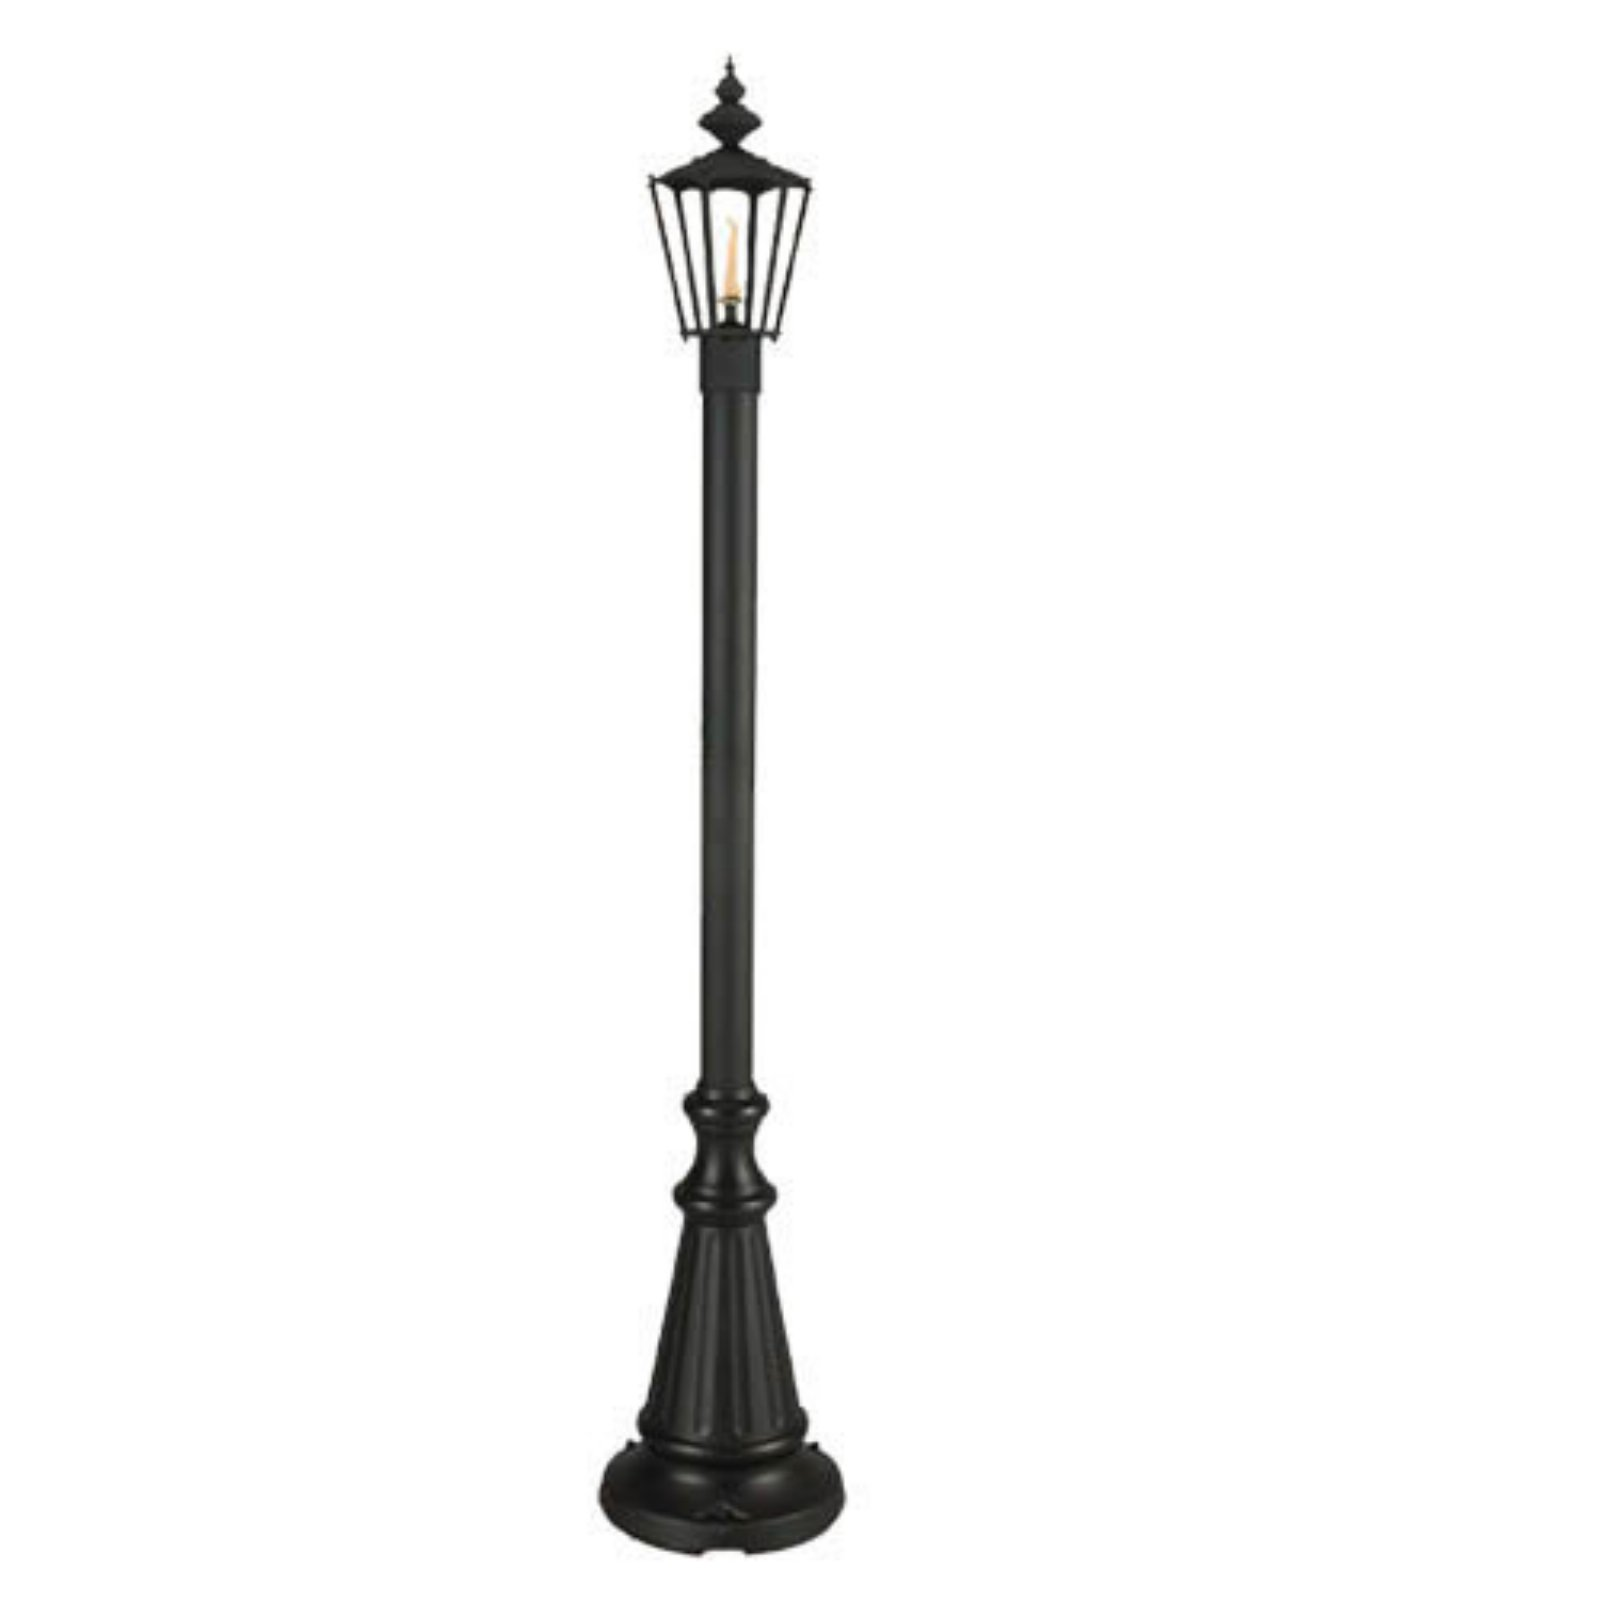 Patio Living Concepts Patio Lantern with Torch